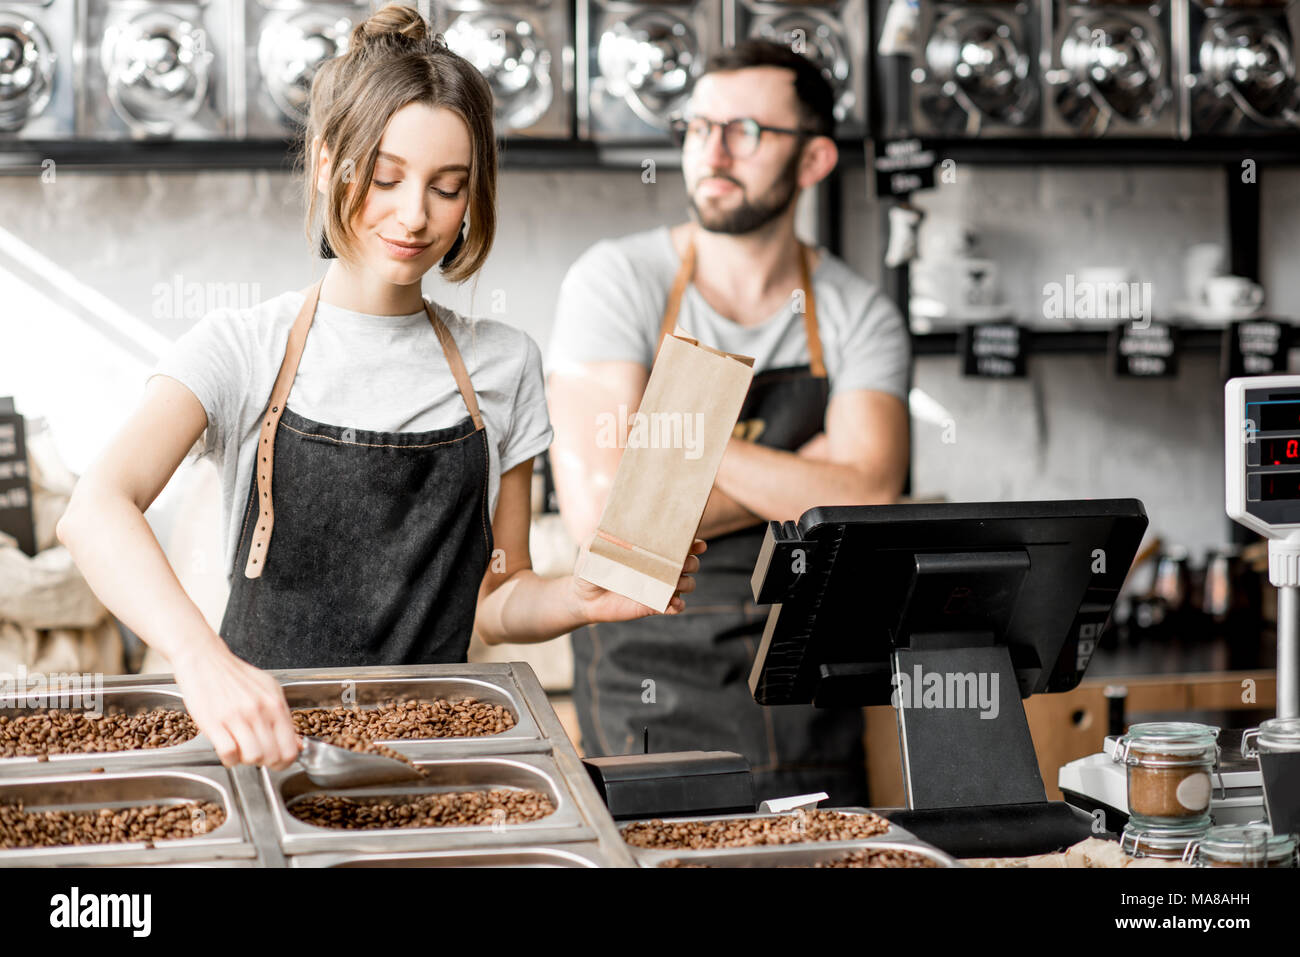 Woman seller filling paper bags with coffee beans while working in the coffee store - Stock Image